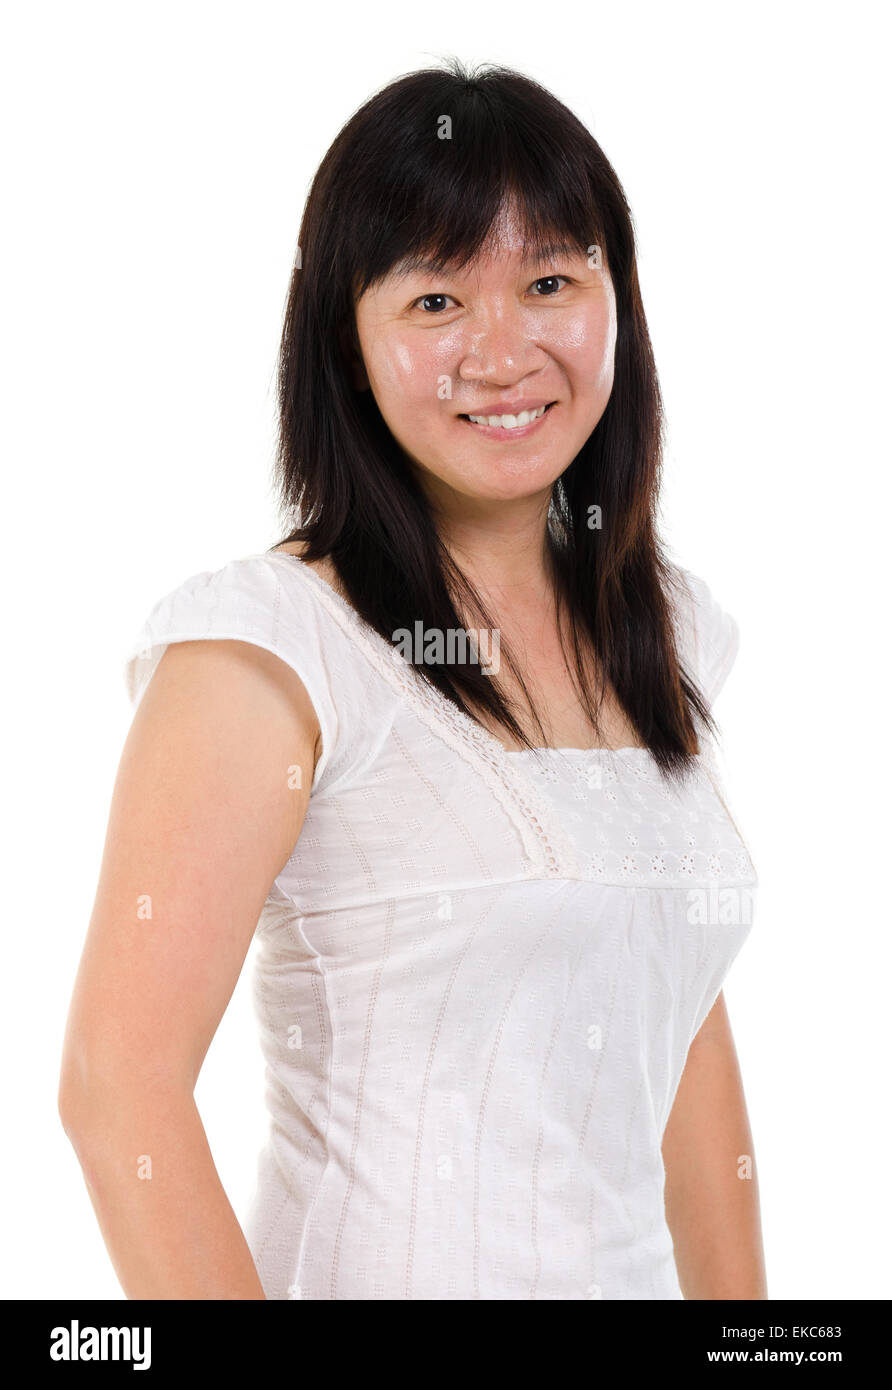 asian mature woman stock photo, royalty free image: 80788291 - alamy